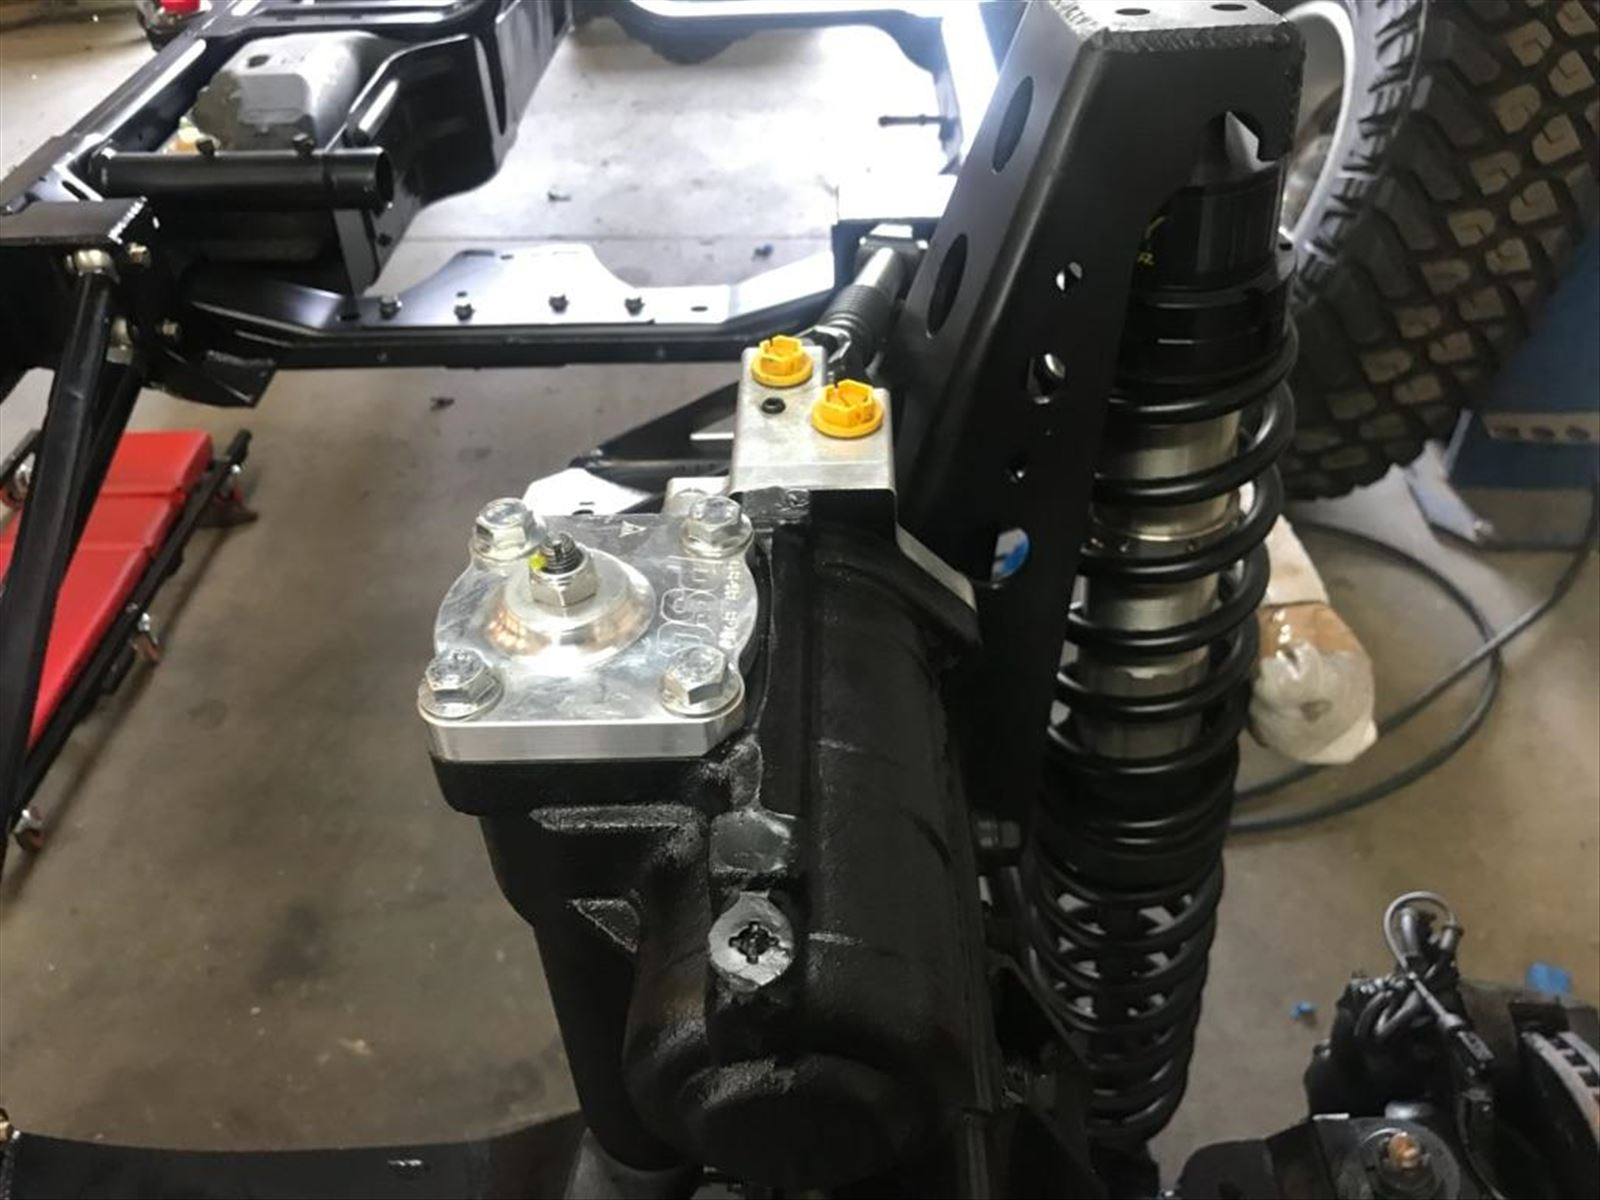 Jeep JK - FAMV-V2 - Powertrain - GM L92 6.2L V8 and 6L80 Photo